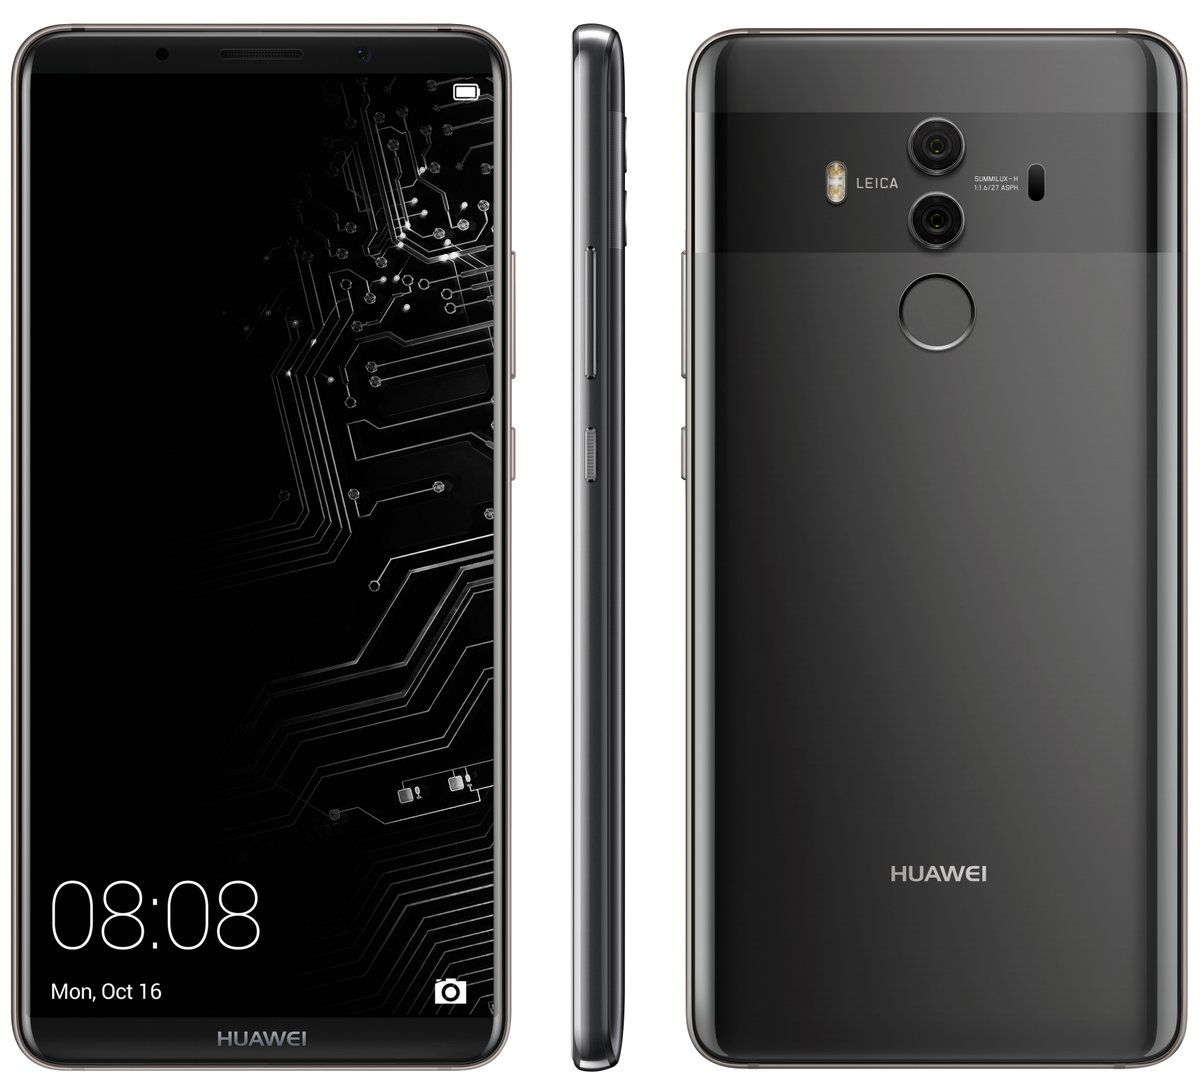 Huawei Mate 10 Pro Shows Its Body In Clear Leak With Images Huawei Phone Huawei Phones